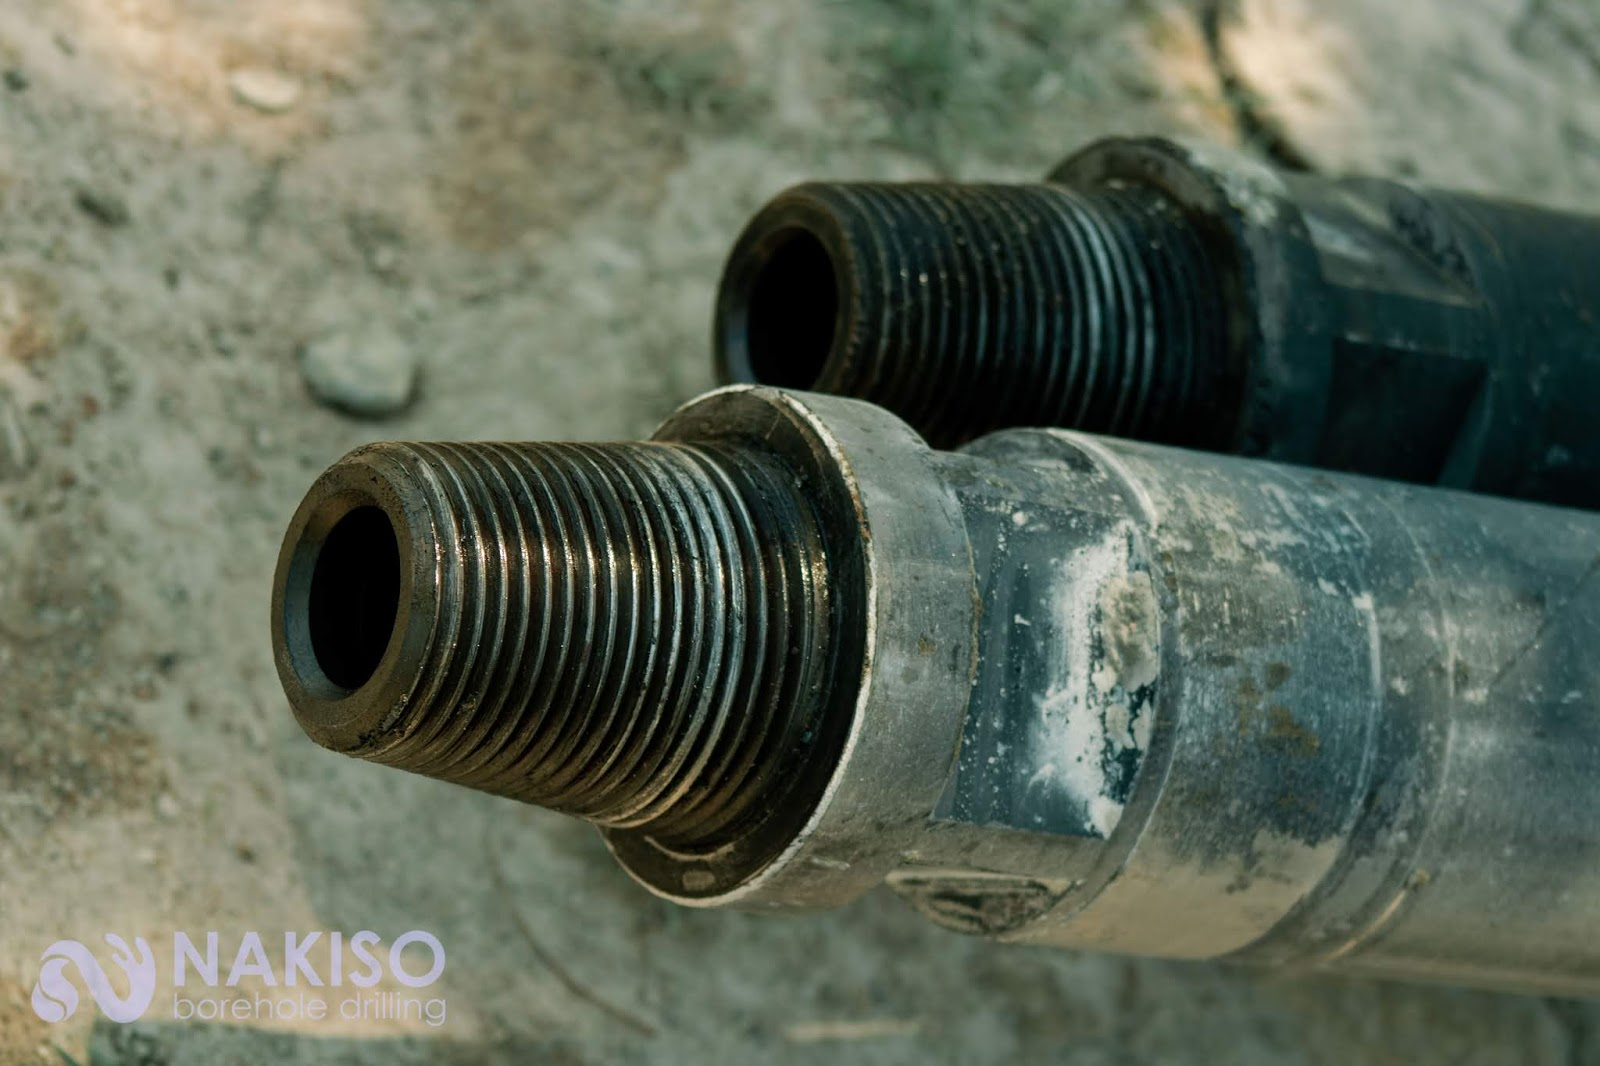 Nakiso Borehole Drilling in Zimbabwe Services Guideline